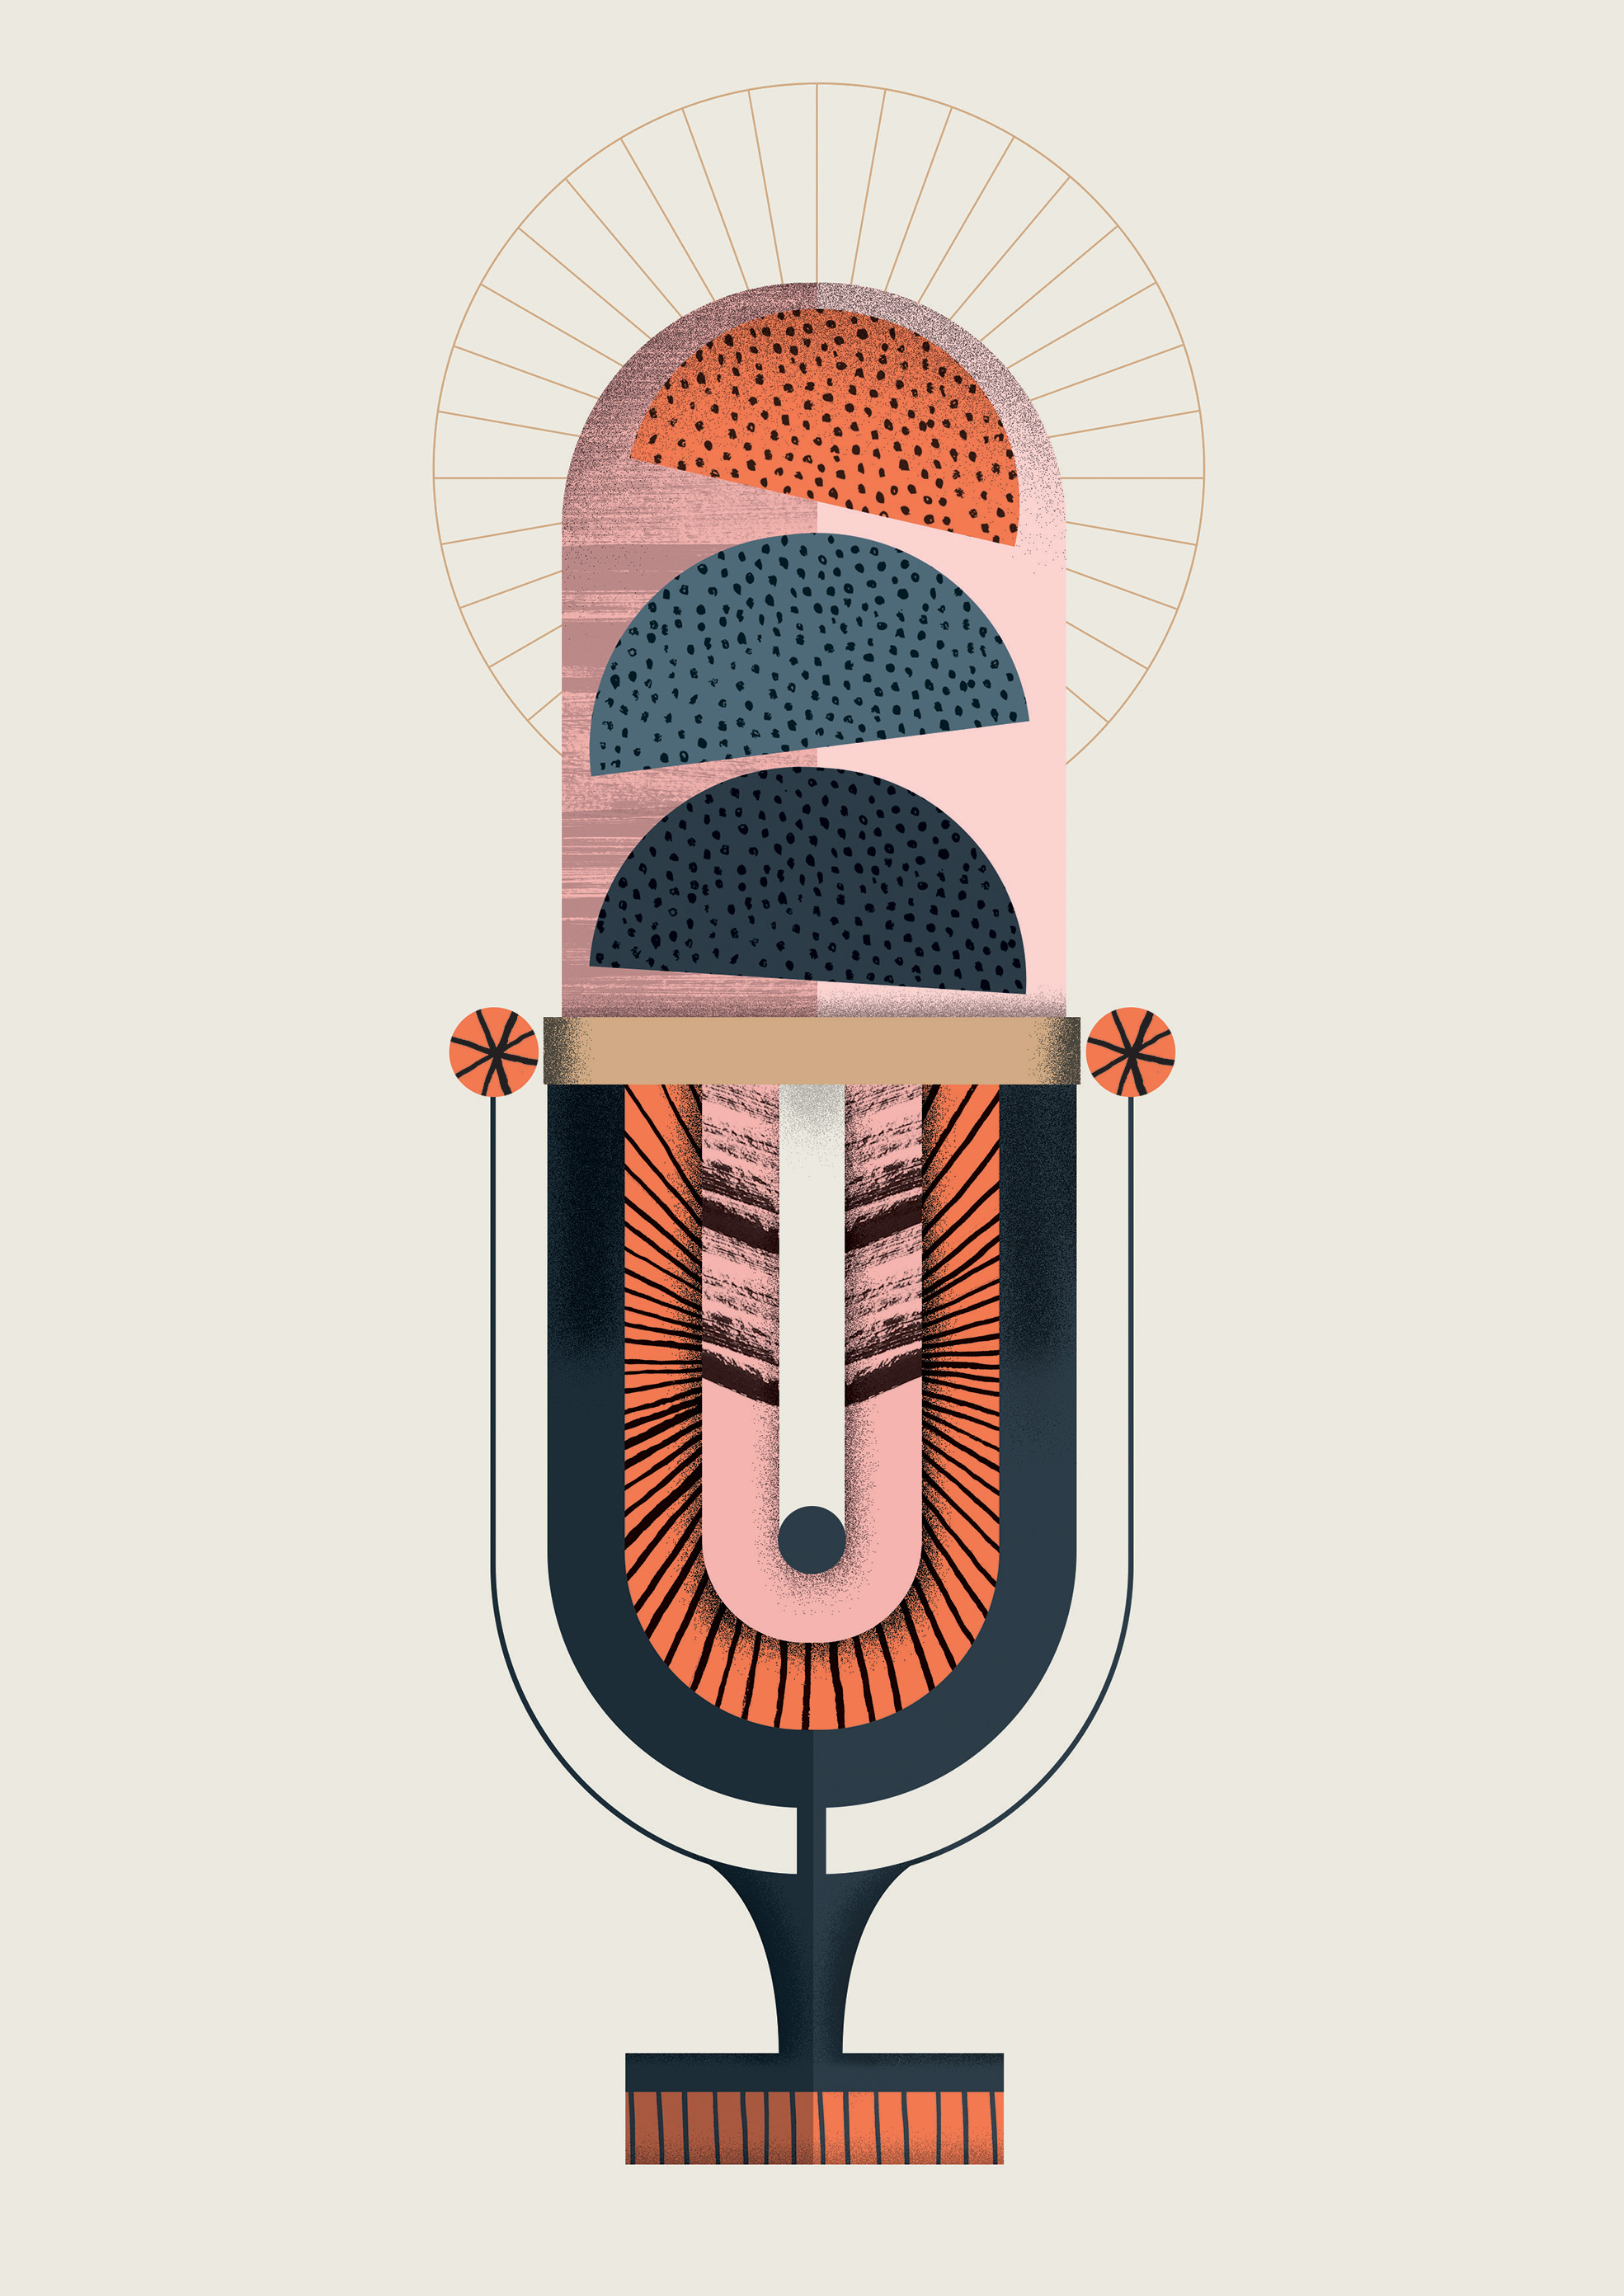 In Search of Audio Imperfection by Vicki Turner for Lagom Magazine